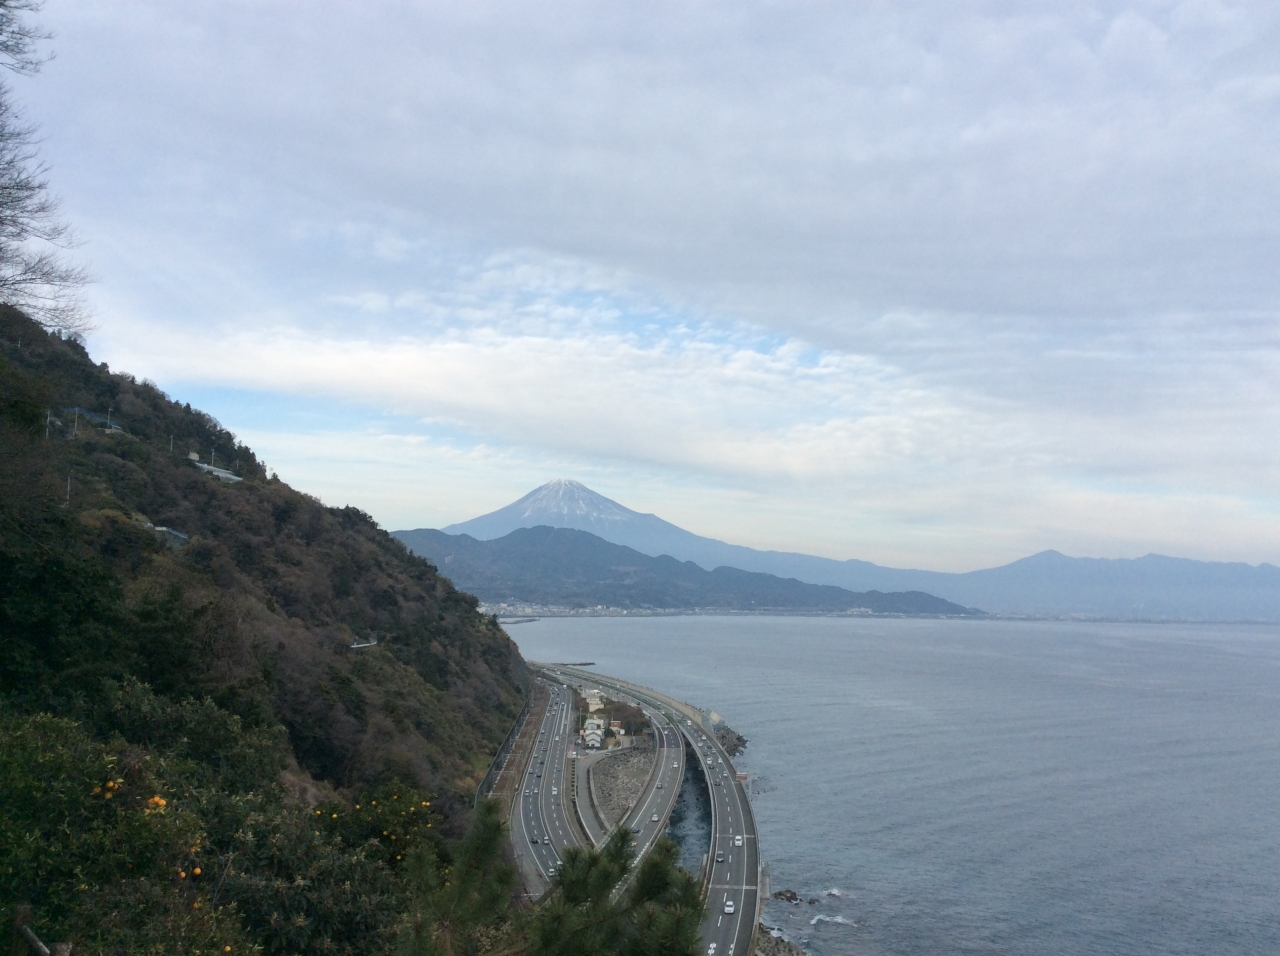 Introduction of Mt. Fuji